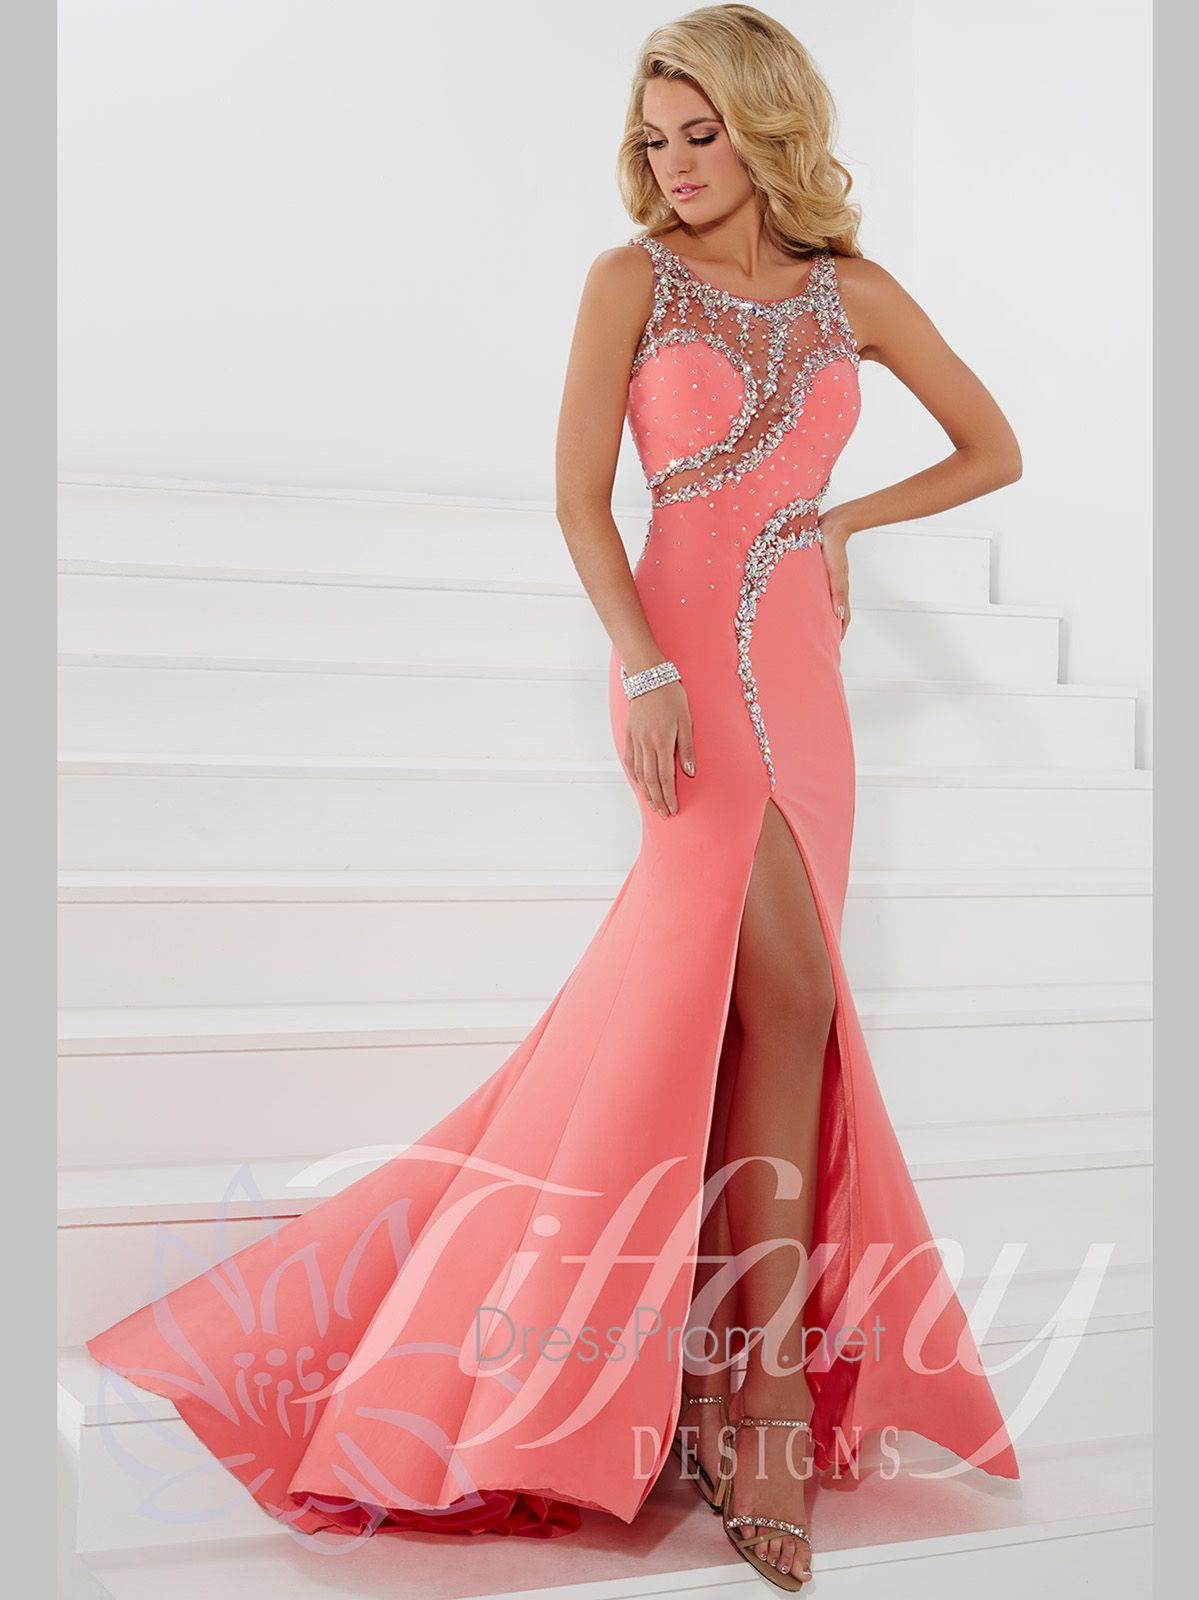 Shine in the spotlight in this Tiffany Designs prom dress and look ...